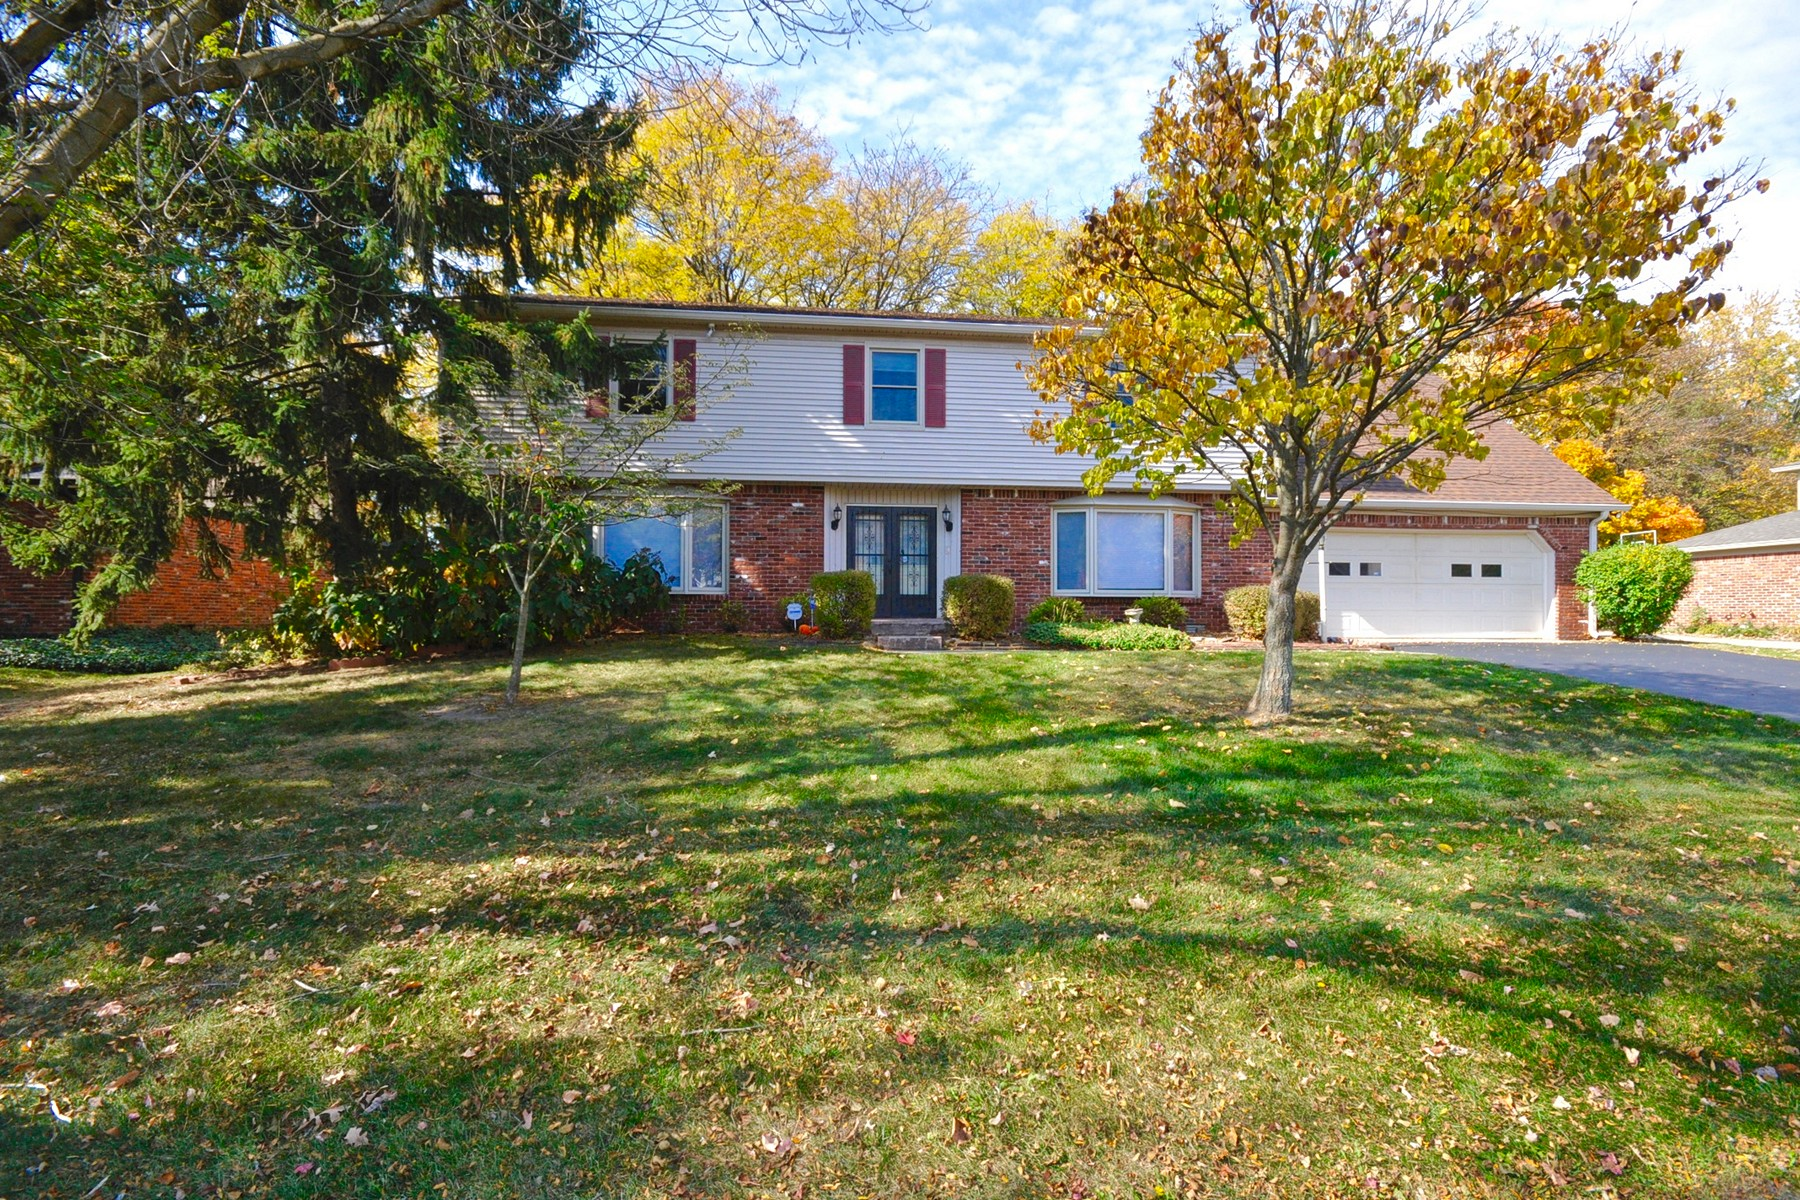 Single Family Home for Sale at Warm and Inviting Home 8930 Sourwood Court Indianapolis, Indiana 46260 United States